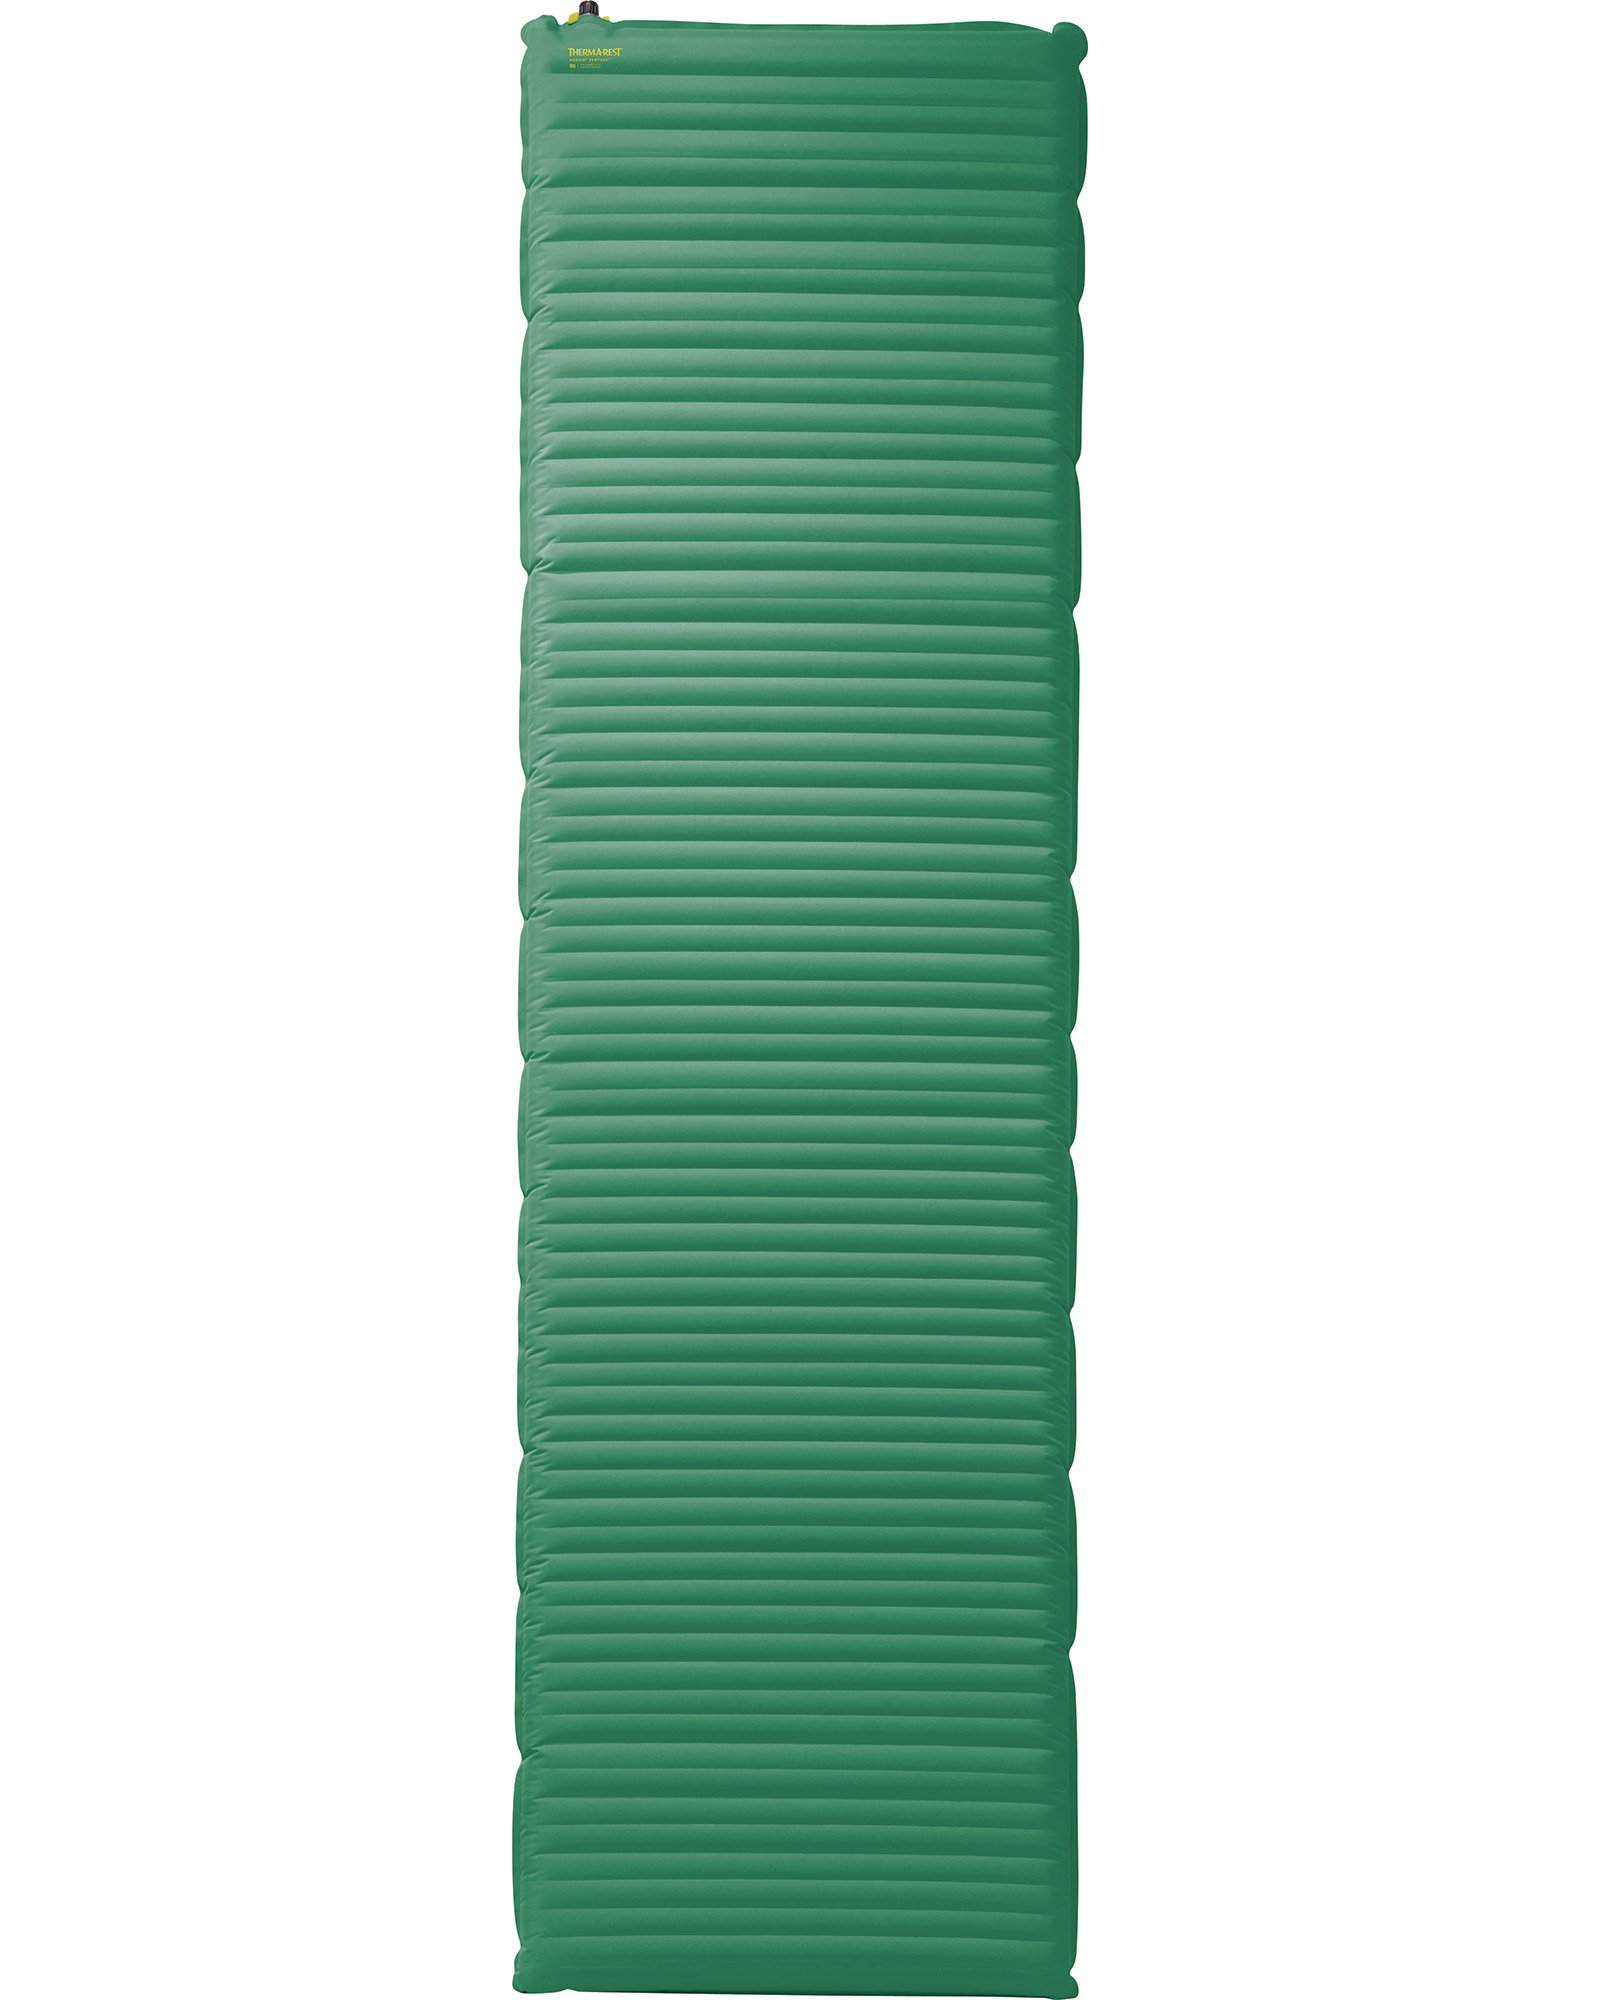 Therm-a-Rest NeoAir Venture Large Camping Mat 0